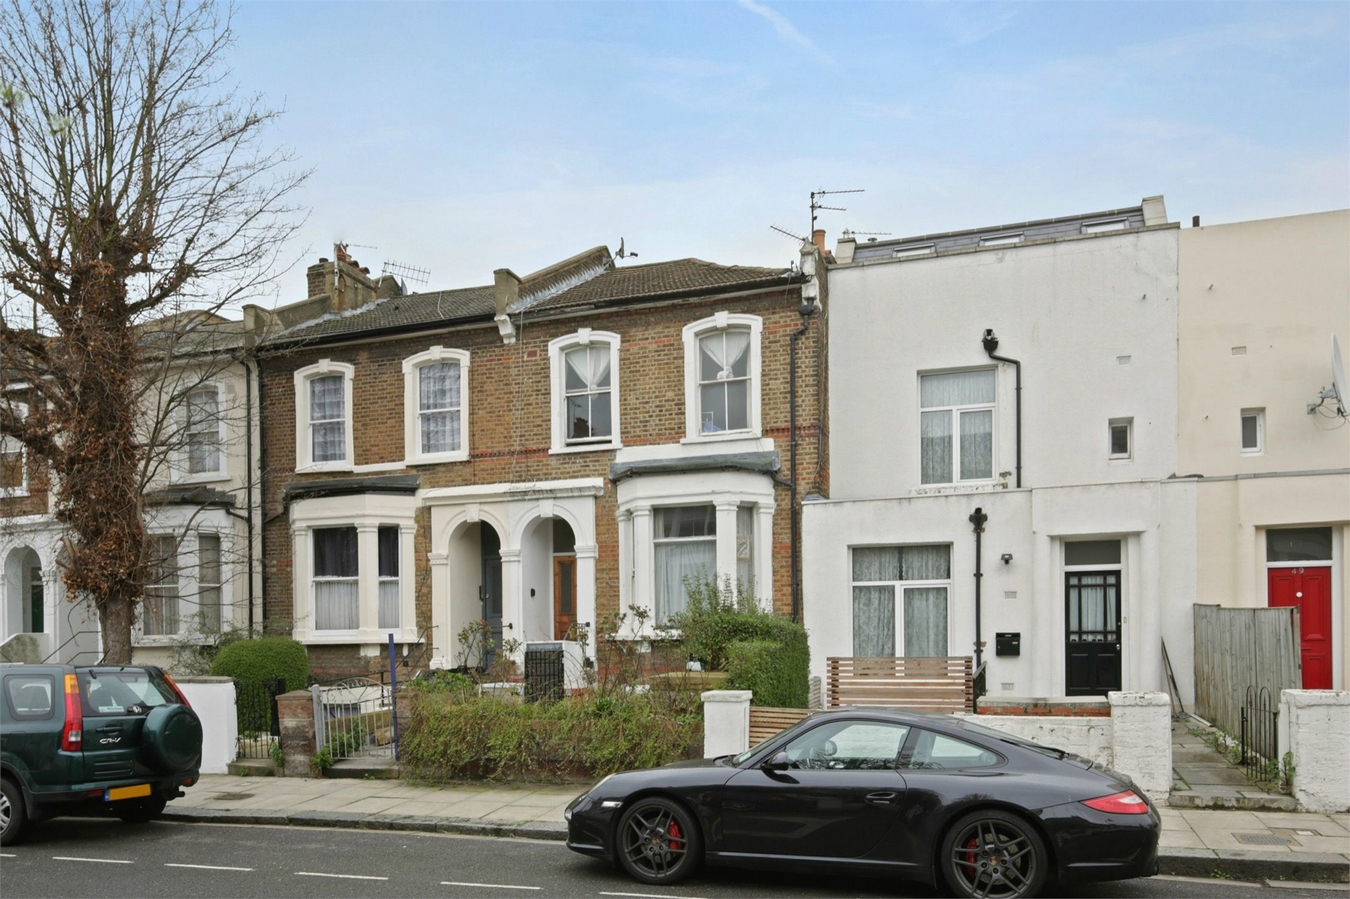 5 Bedroom Townhouse For Sale In Stowe Road W12 London